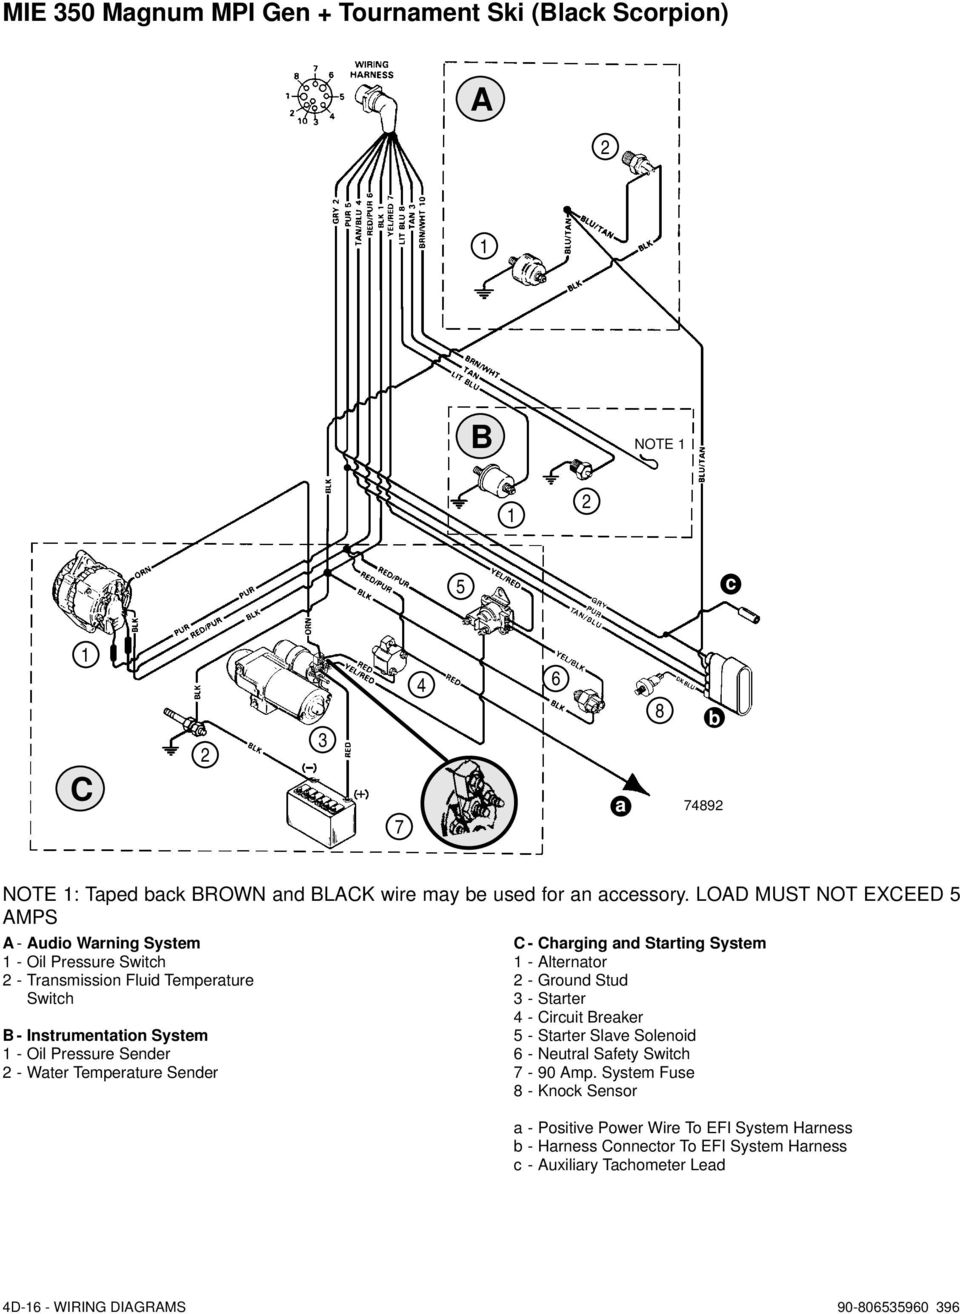 Electrical Systems Wiring Diagrams Pdf. Water Temperature Sender Harging And Starting System Lternator Ground Stud Starter. Ford. Ford 2 9 Efi Wiring Diagram At Scoala.co